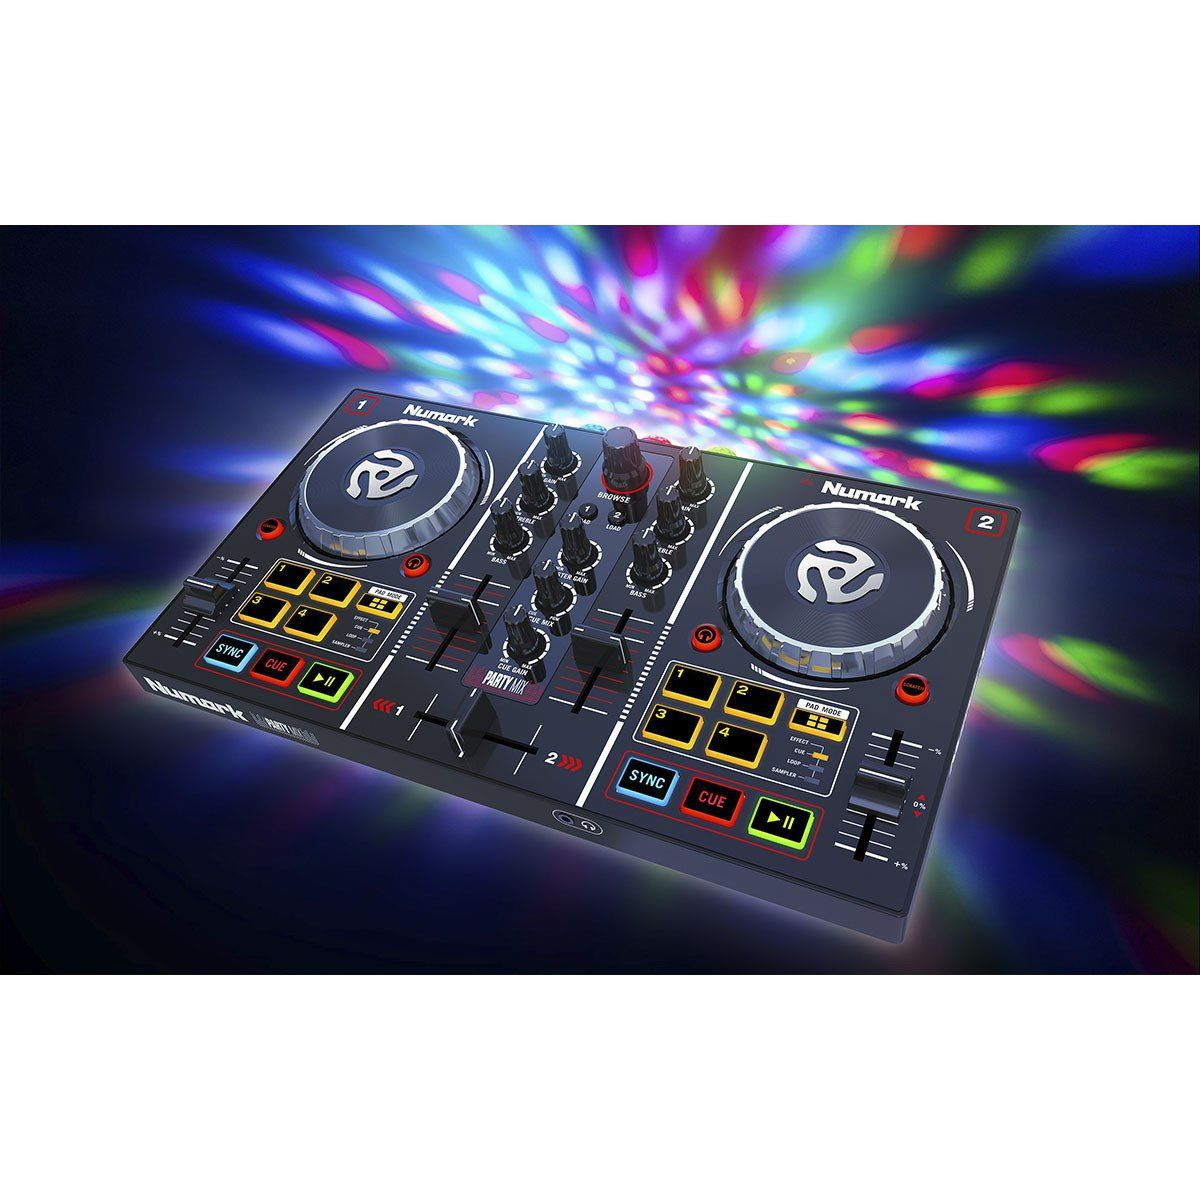 Numark Party Mix Controladora DJ Partymix 2-Decks 2-Canais Usb Leds Coloridos